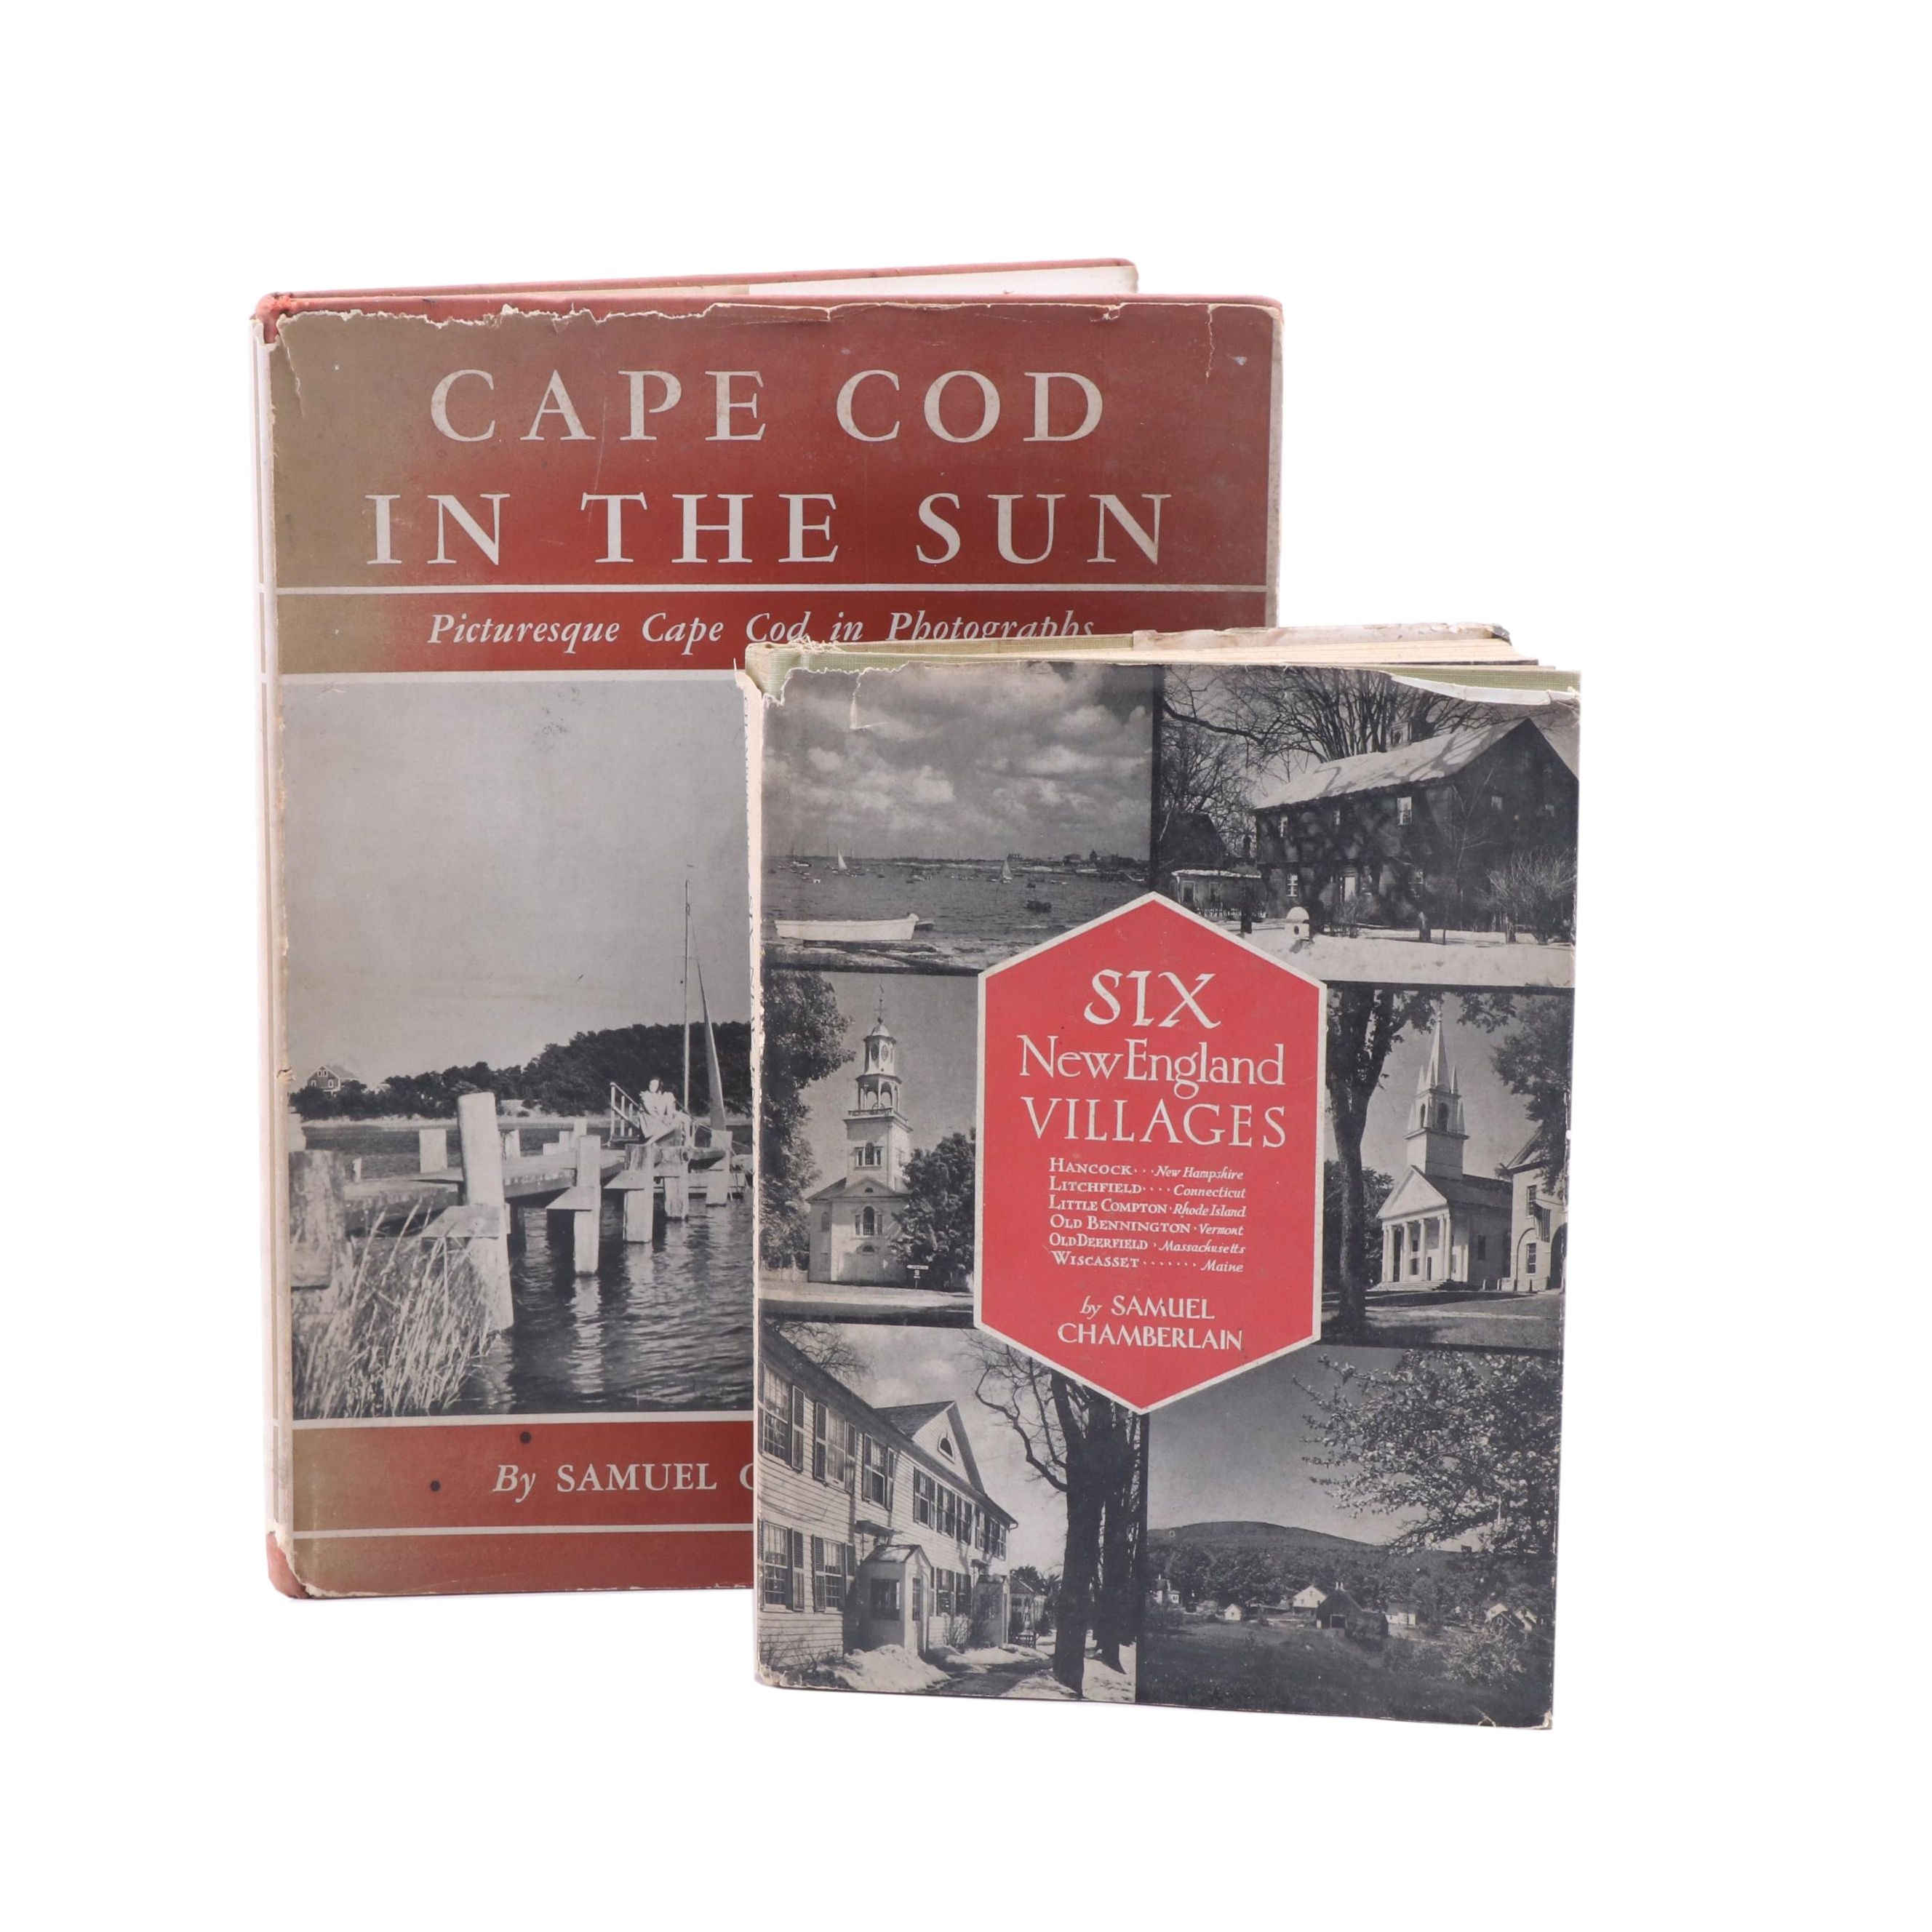 Signed Cape Cod and New England Books by Samuel Chamberlain